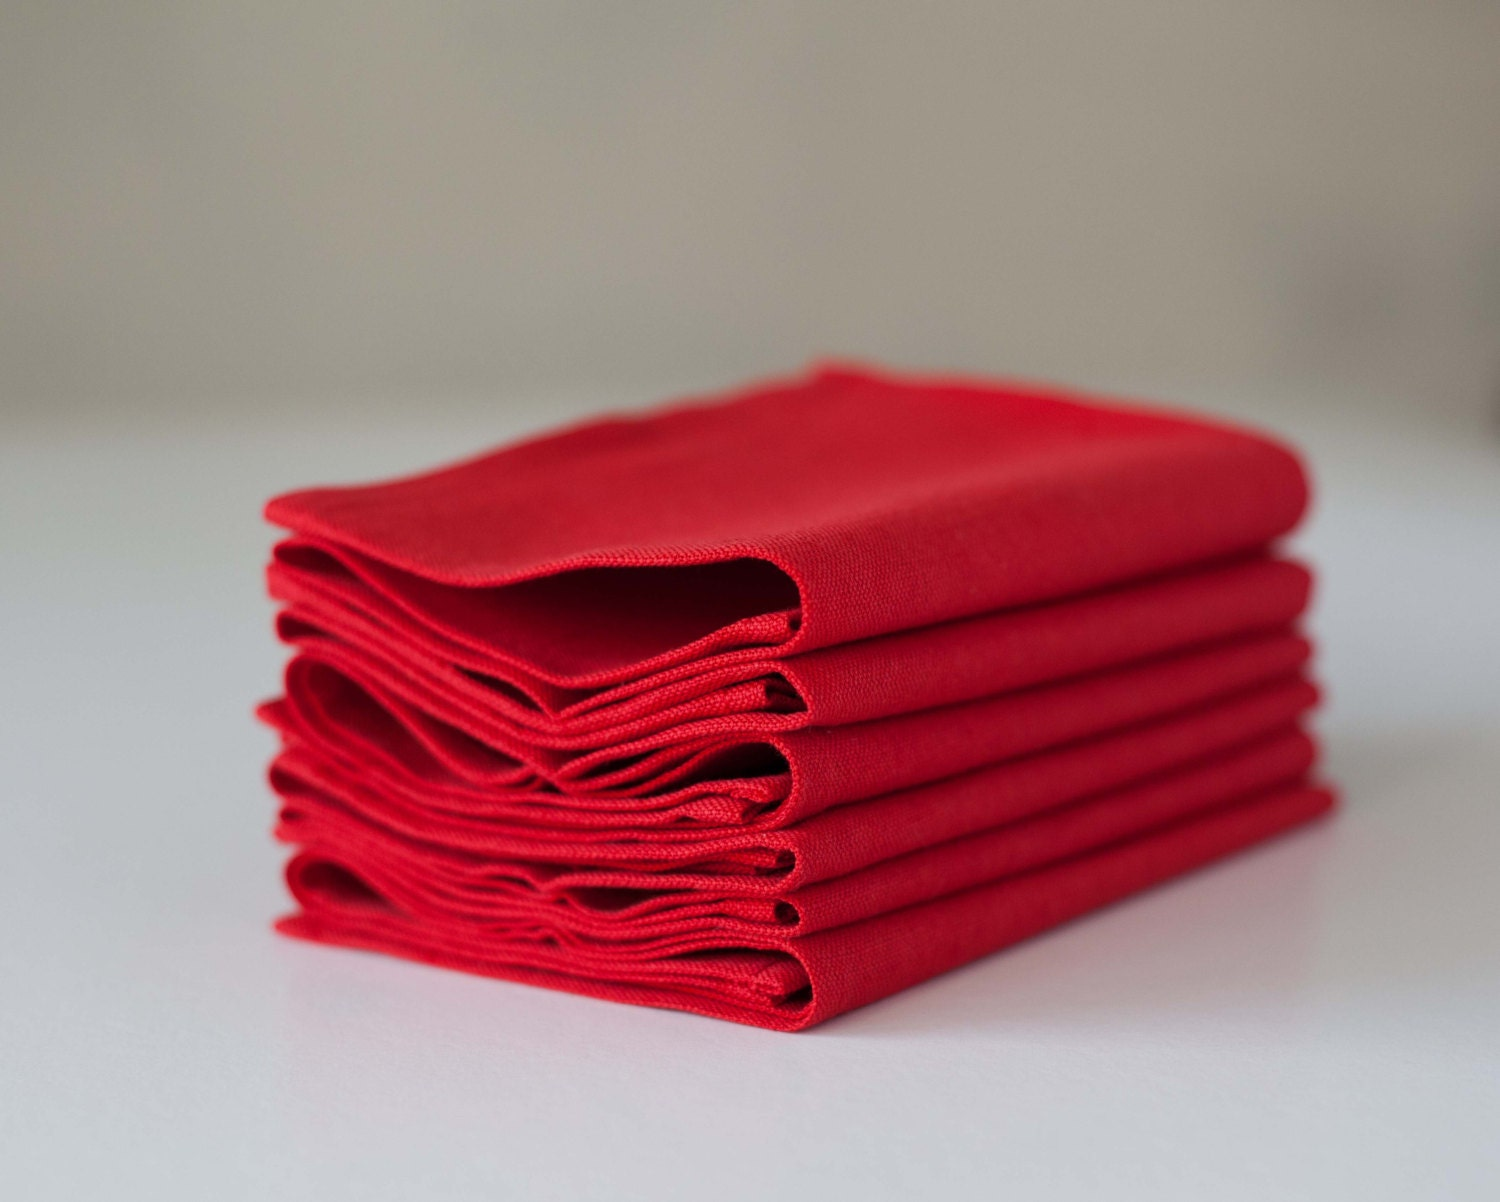 Red Napkins Linen Napkins Cloth Napkins Table By Pillowlink